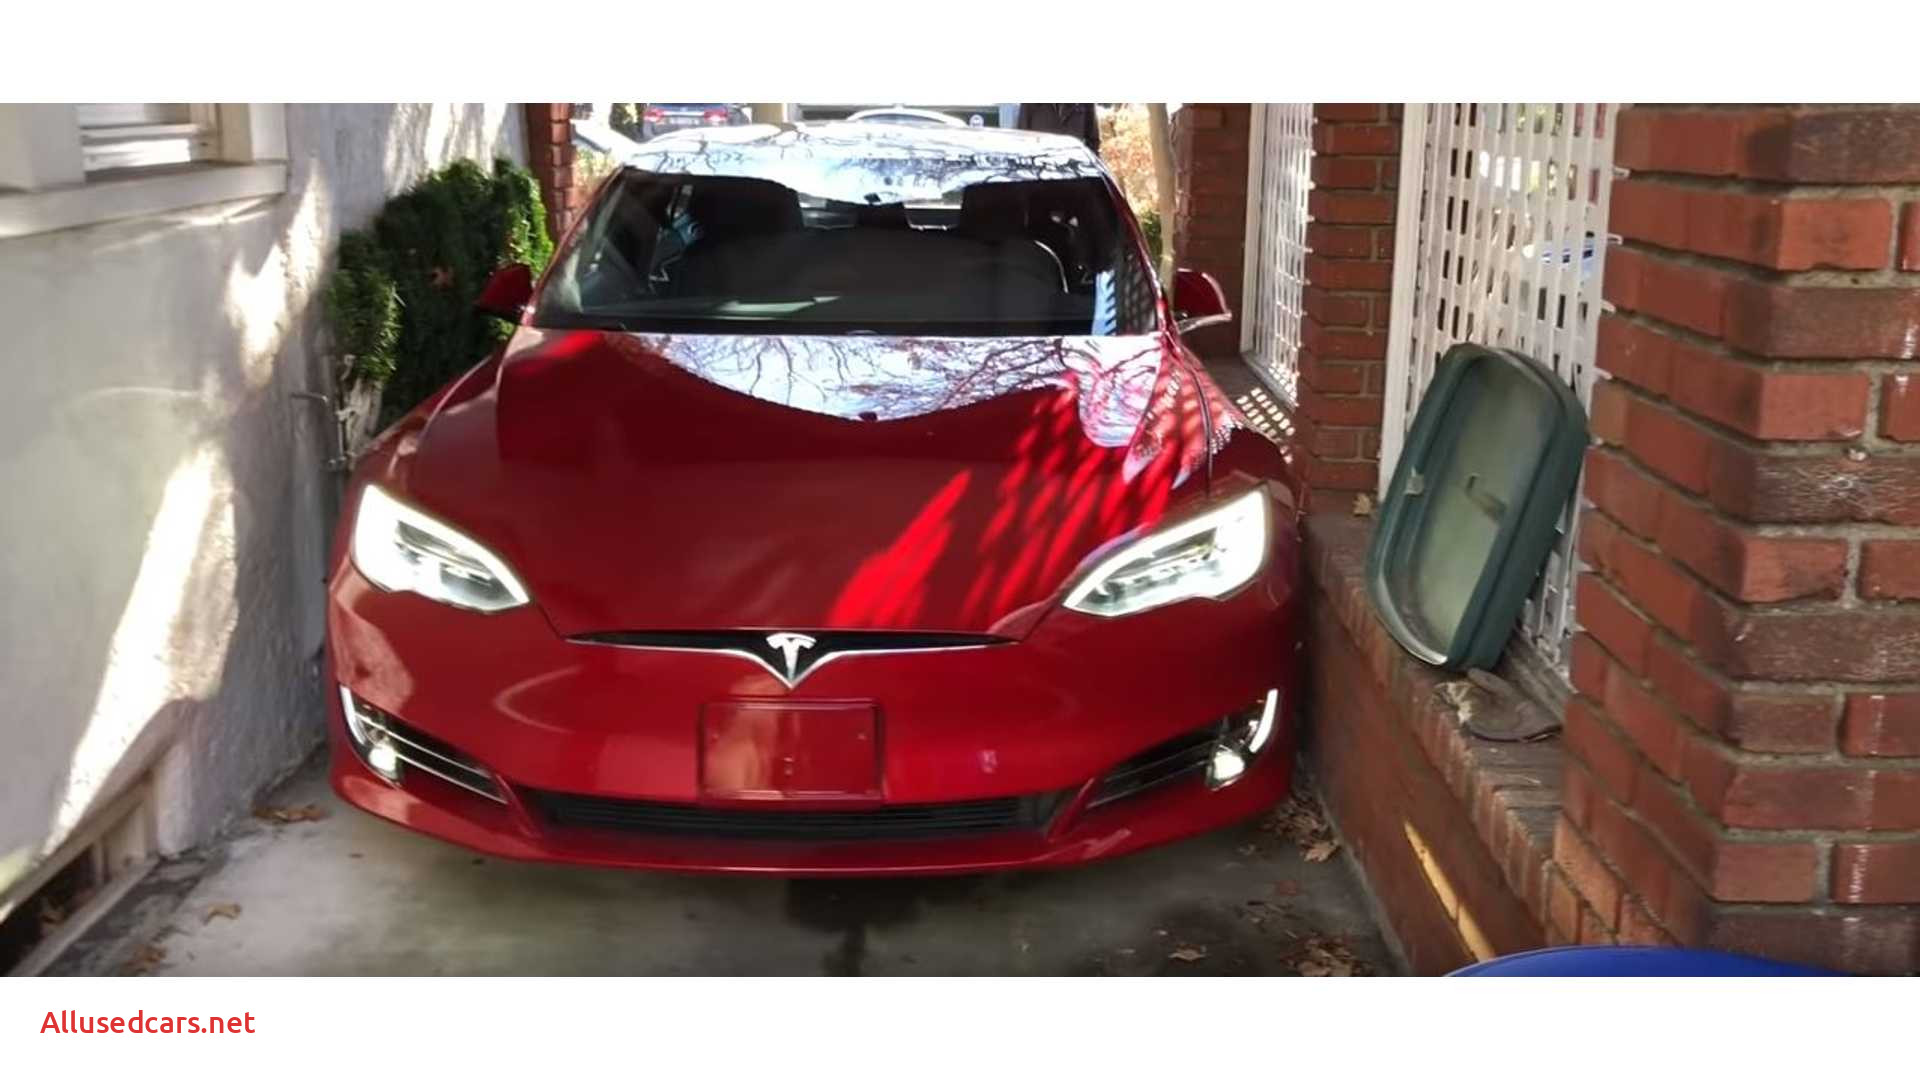 watch this tesla model s summon into incredibly tight spot